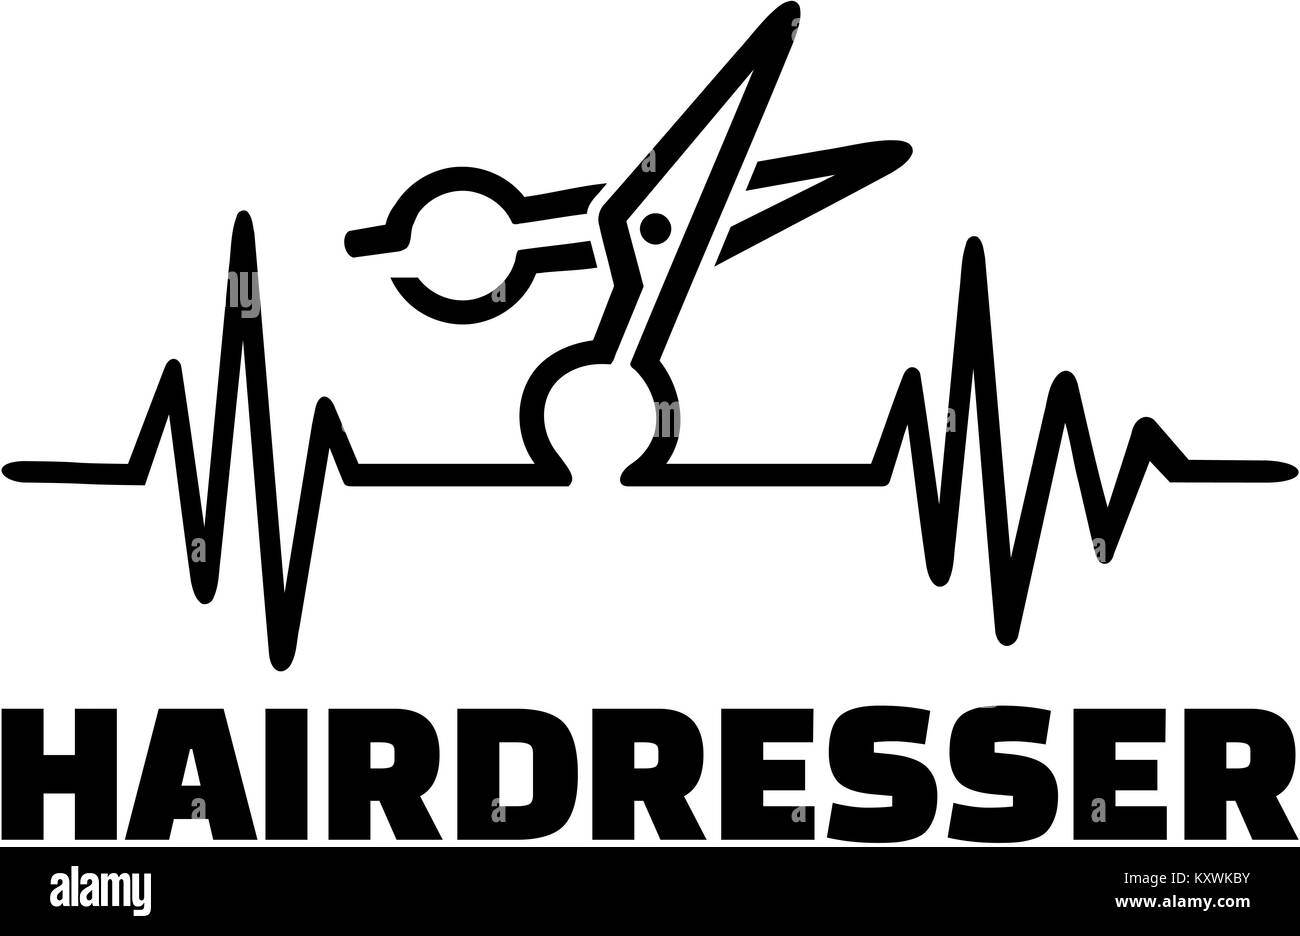 Hairdresser frequence - Stock Image